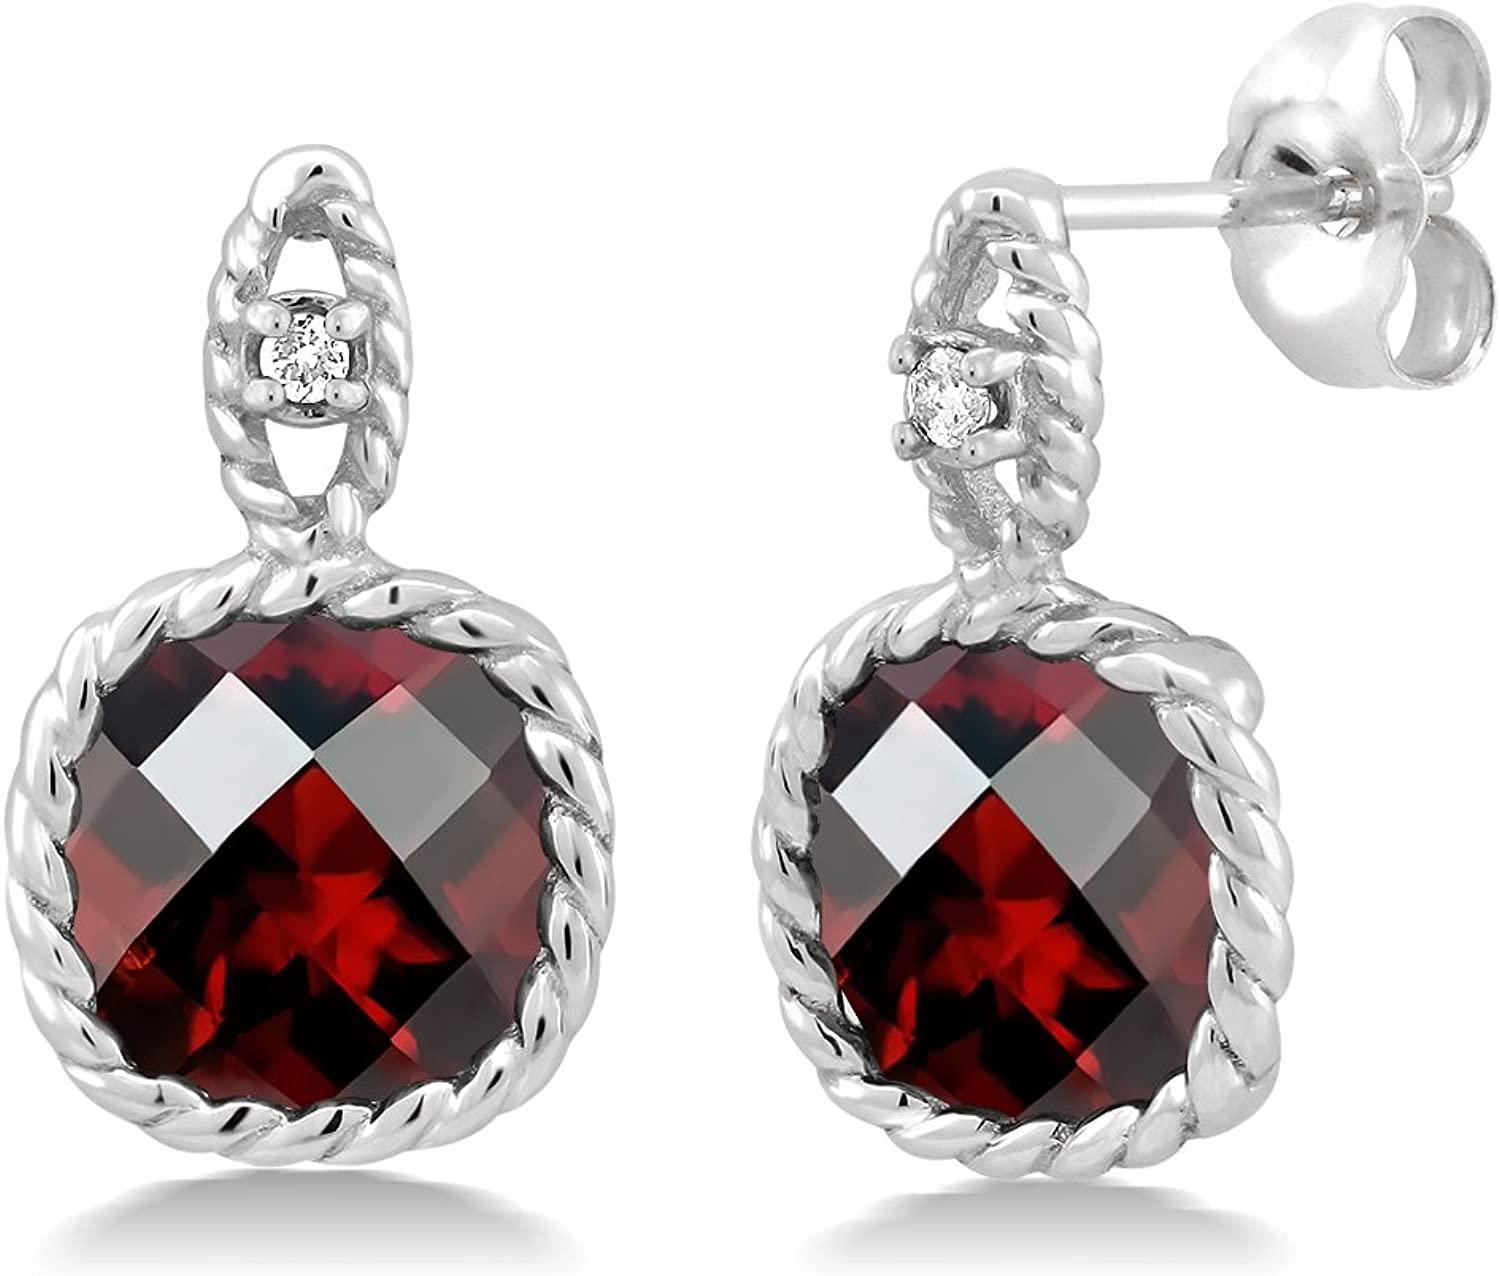 10K White gold 4.80 Ct 8mm Cushion Checkerboard Garnet & Diamond Cable Earrings